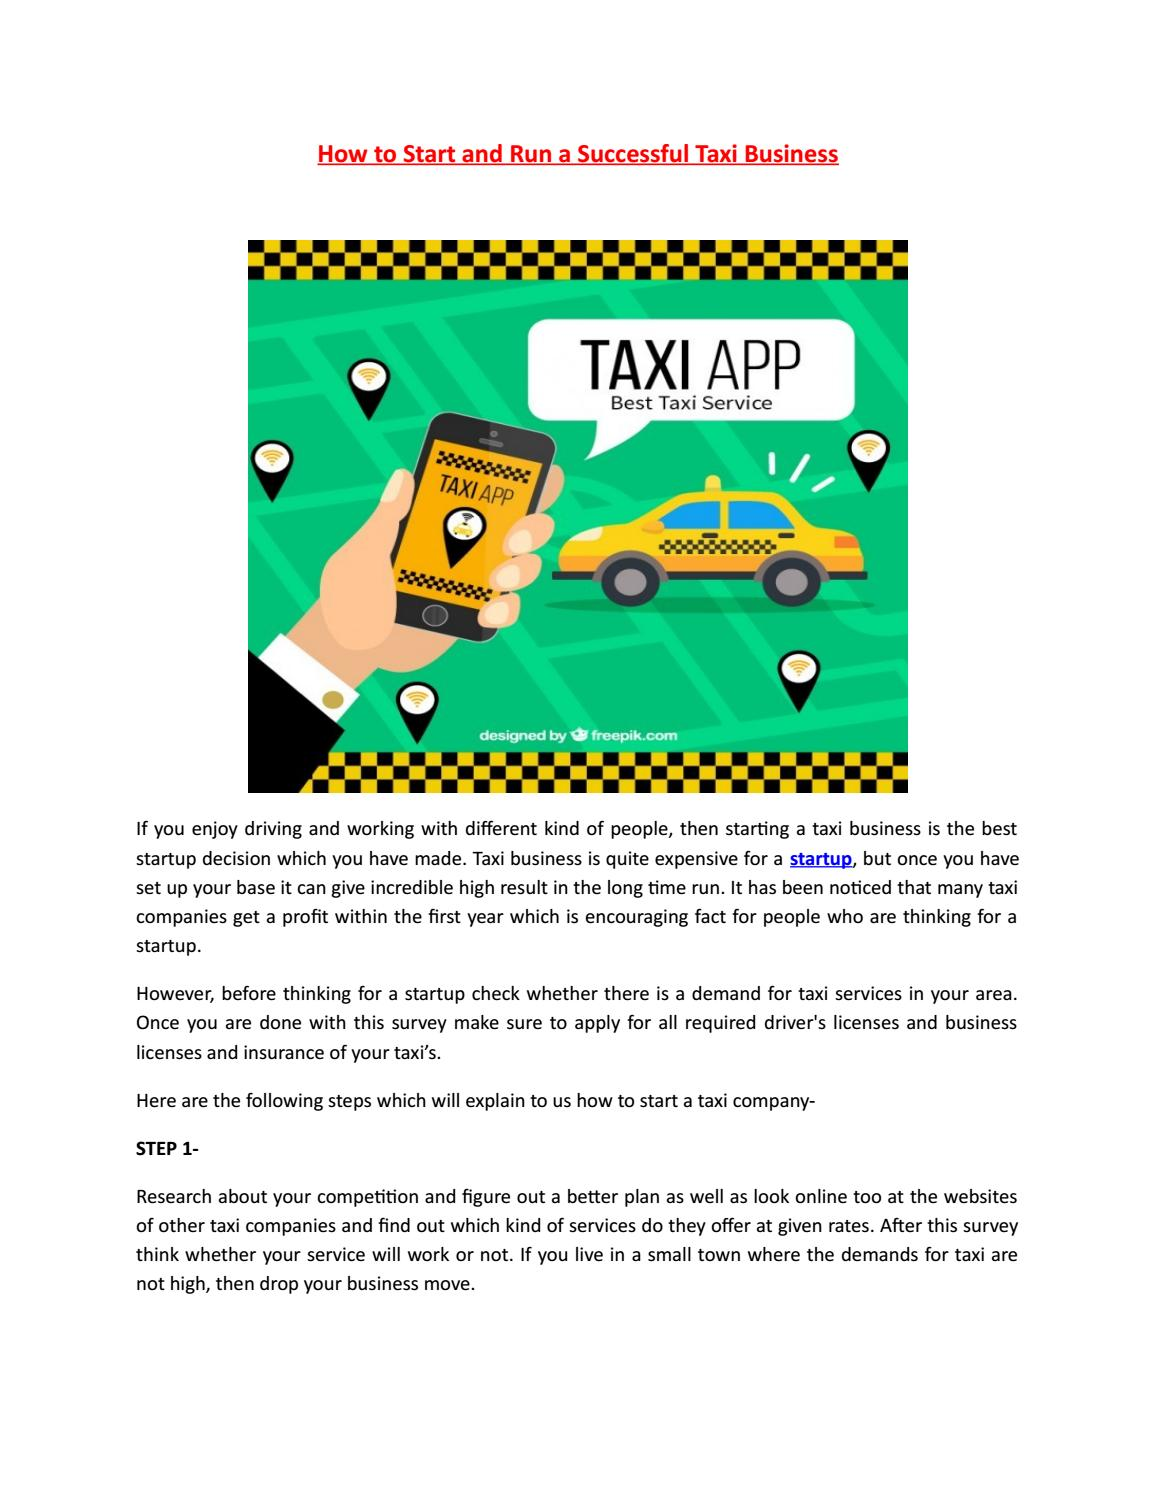 How to Start and Run a Successful Taxi Business by Webs